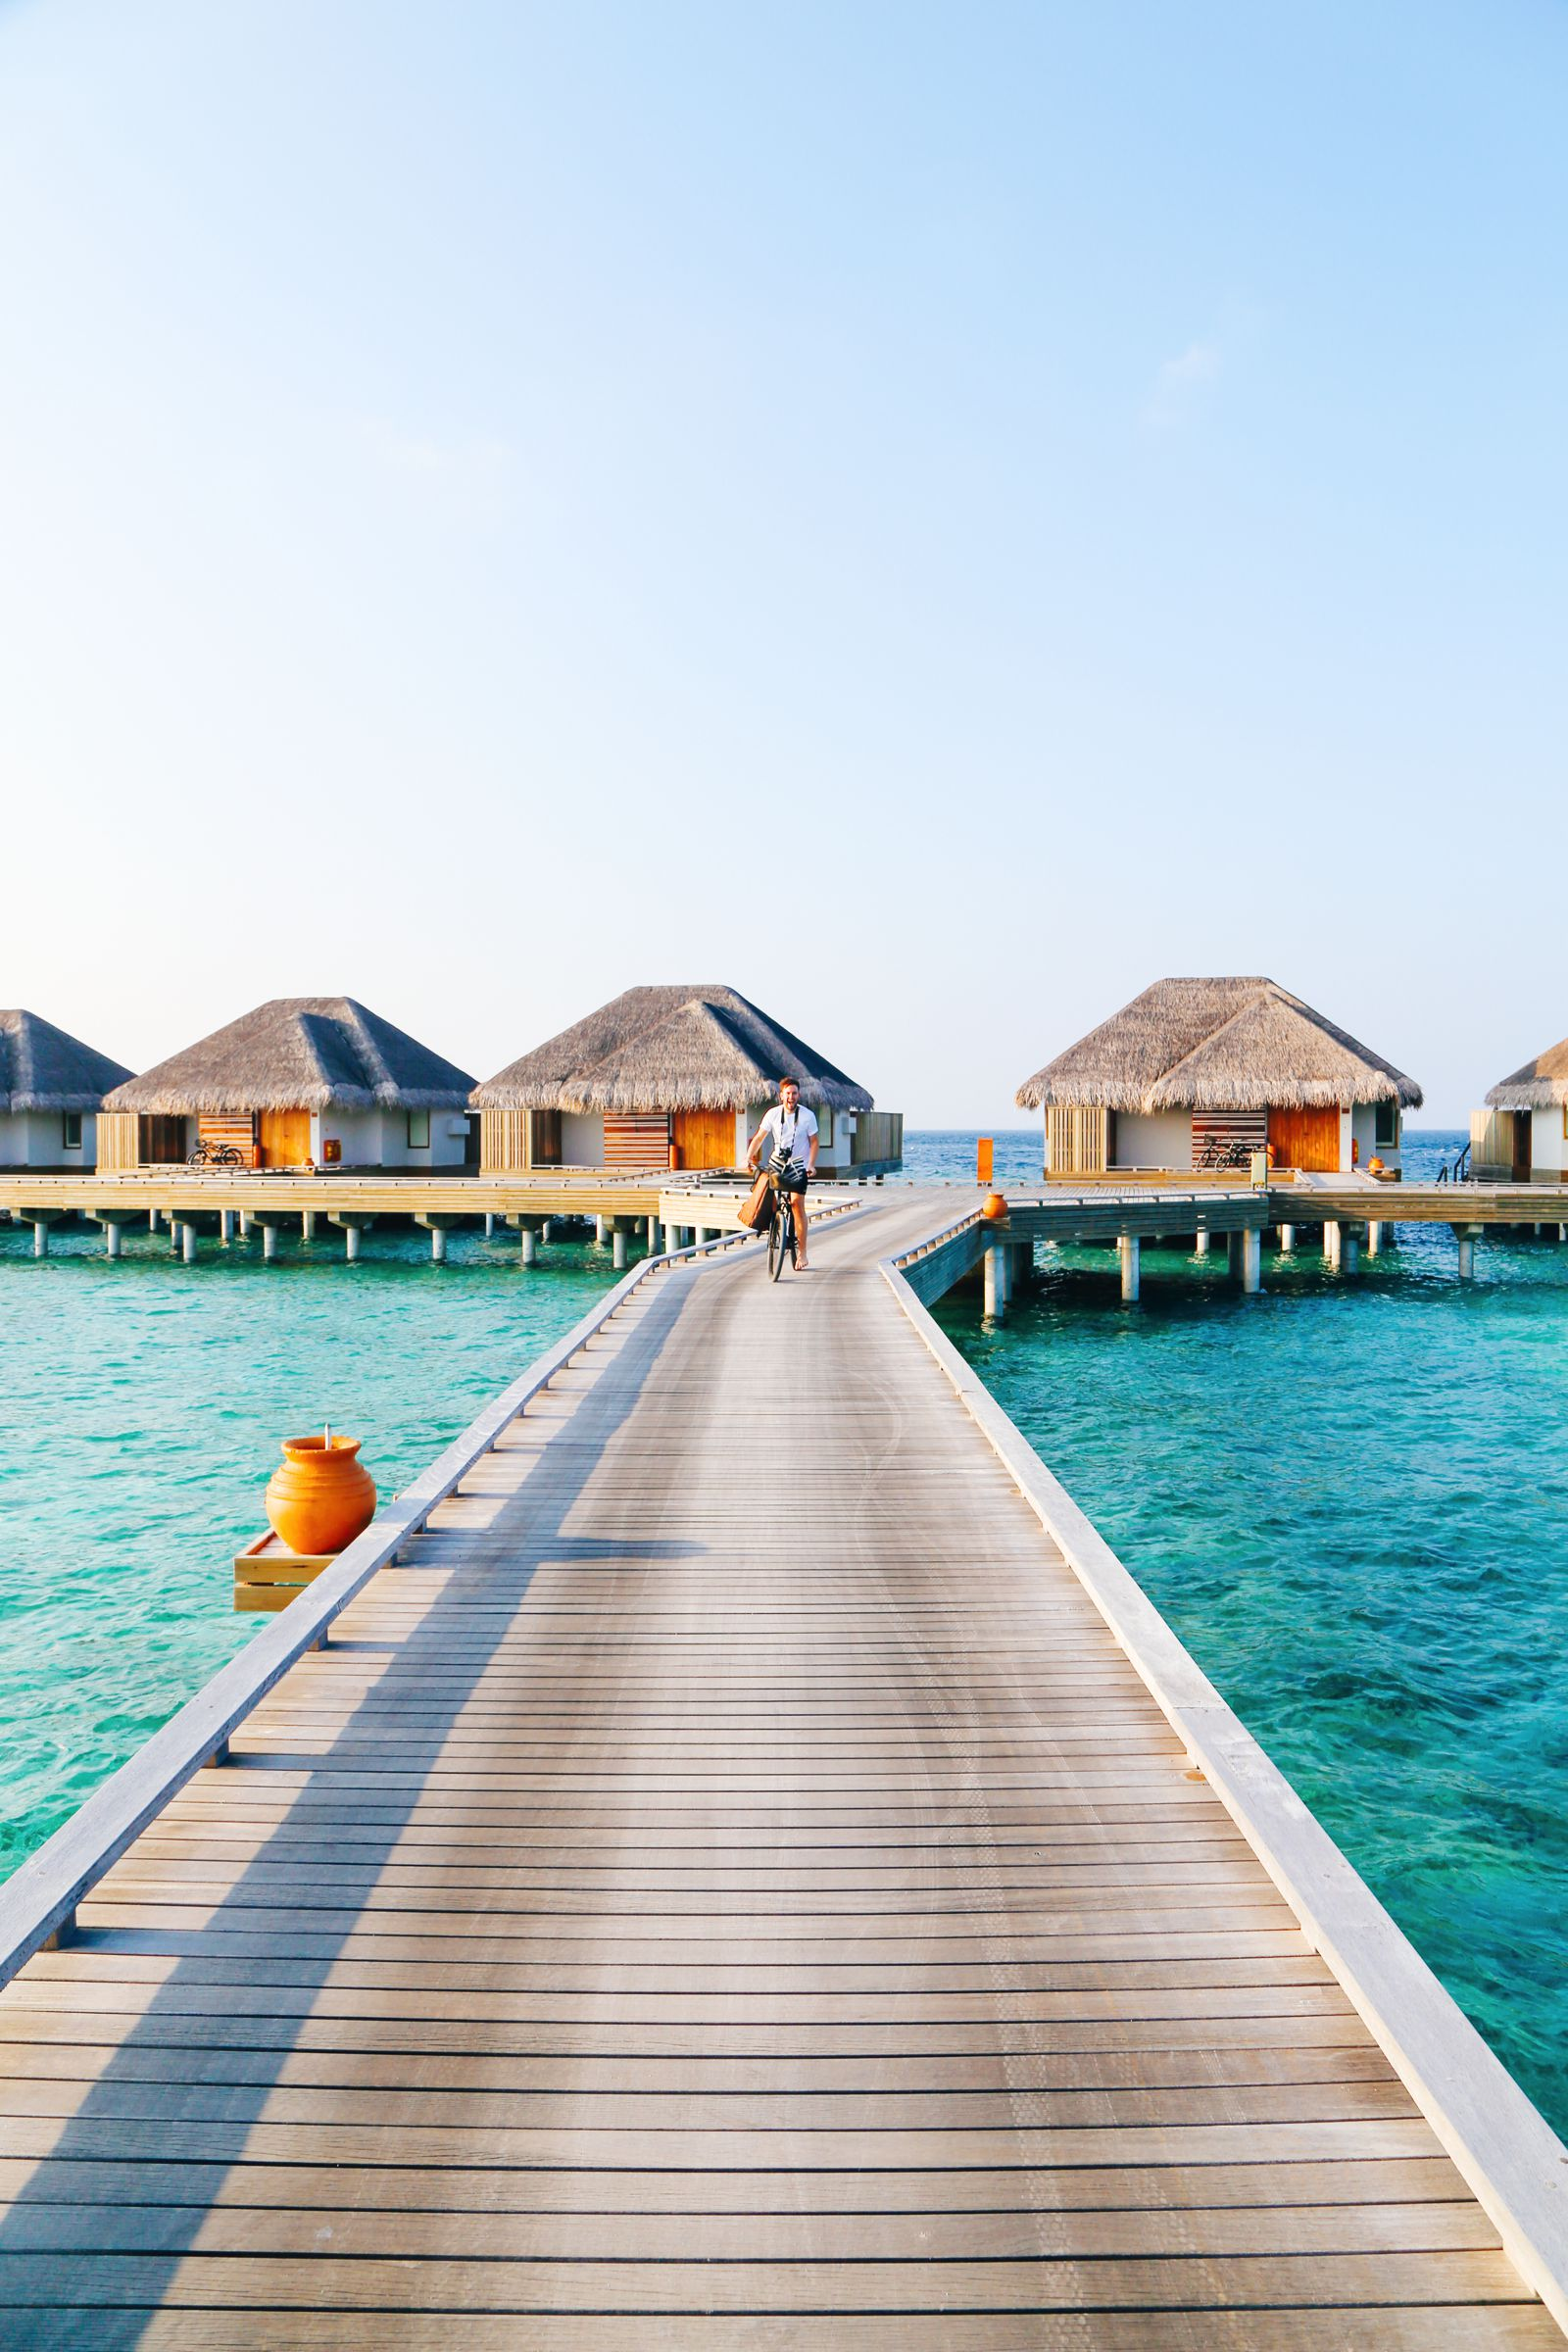 Arrival At The Dusit Thani In The Maldives! (39)